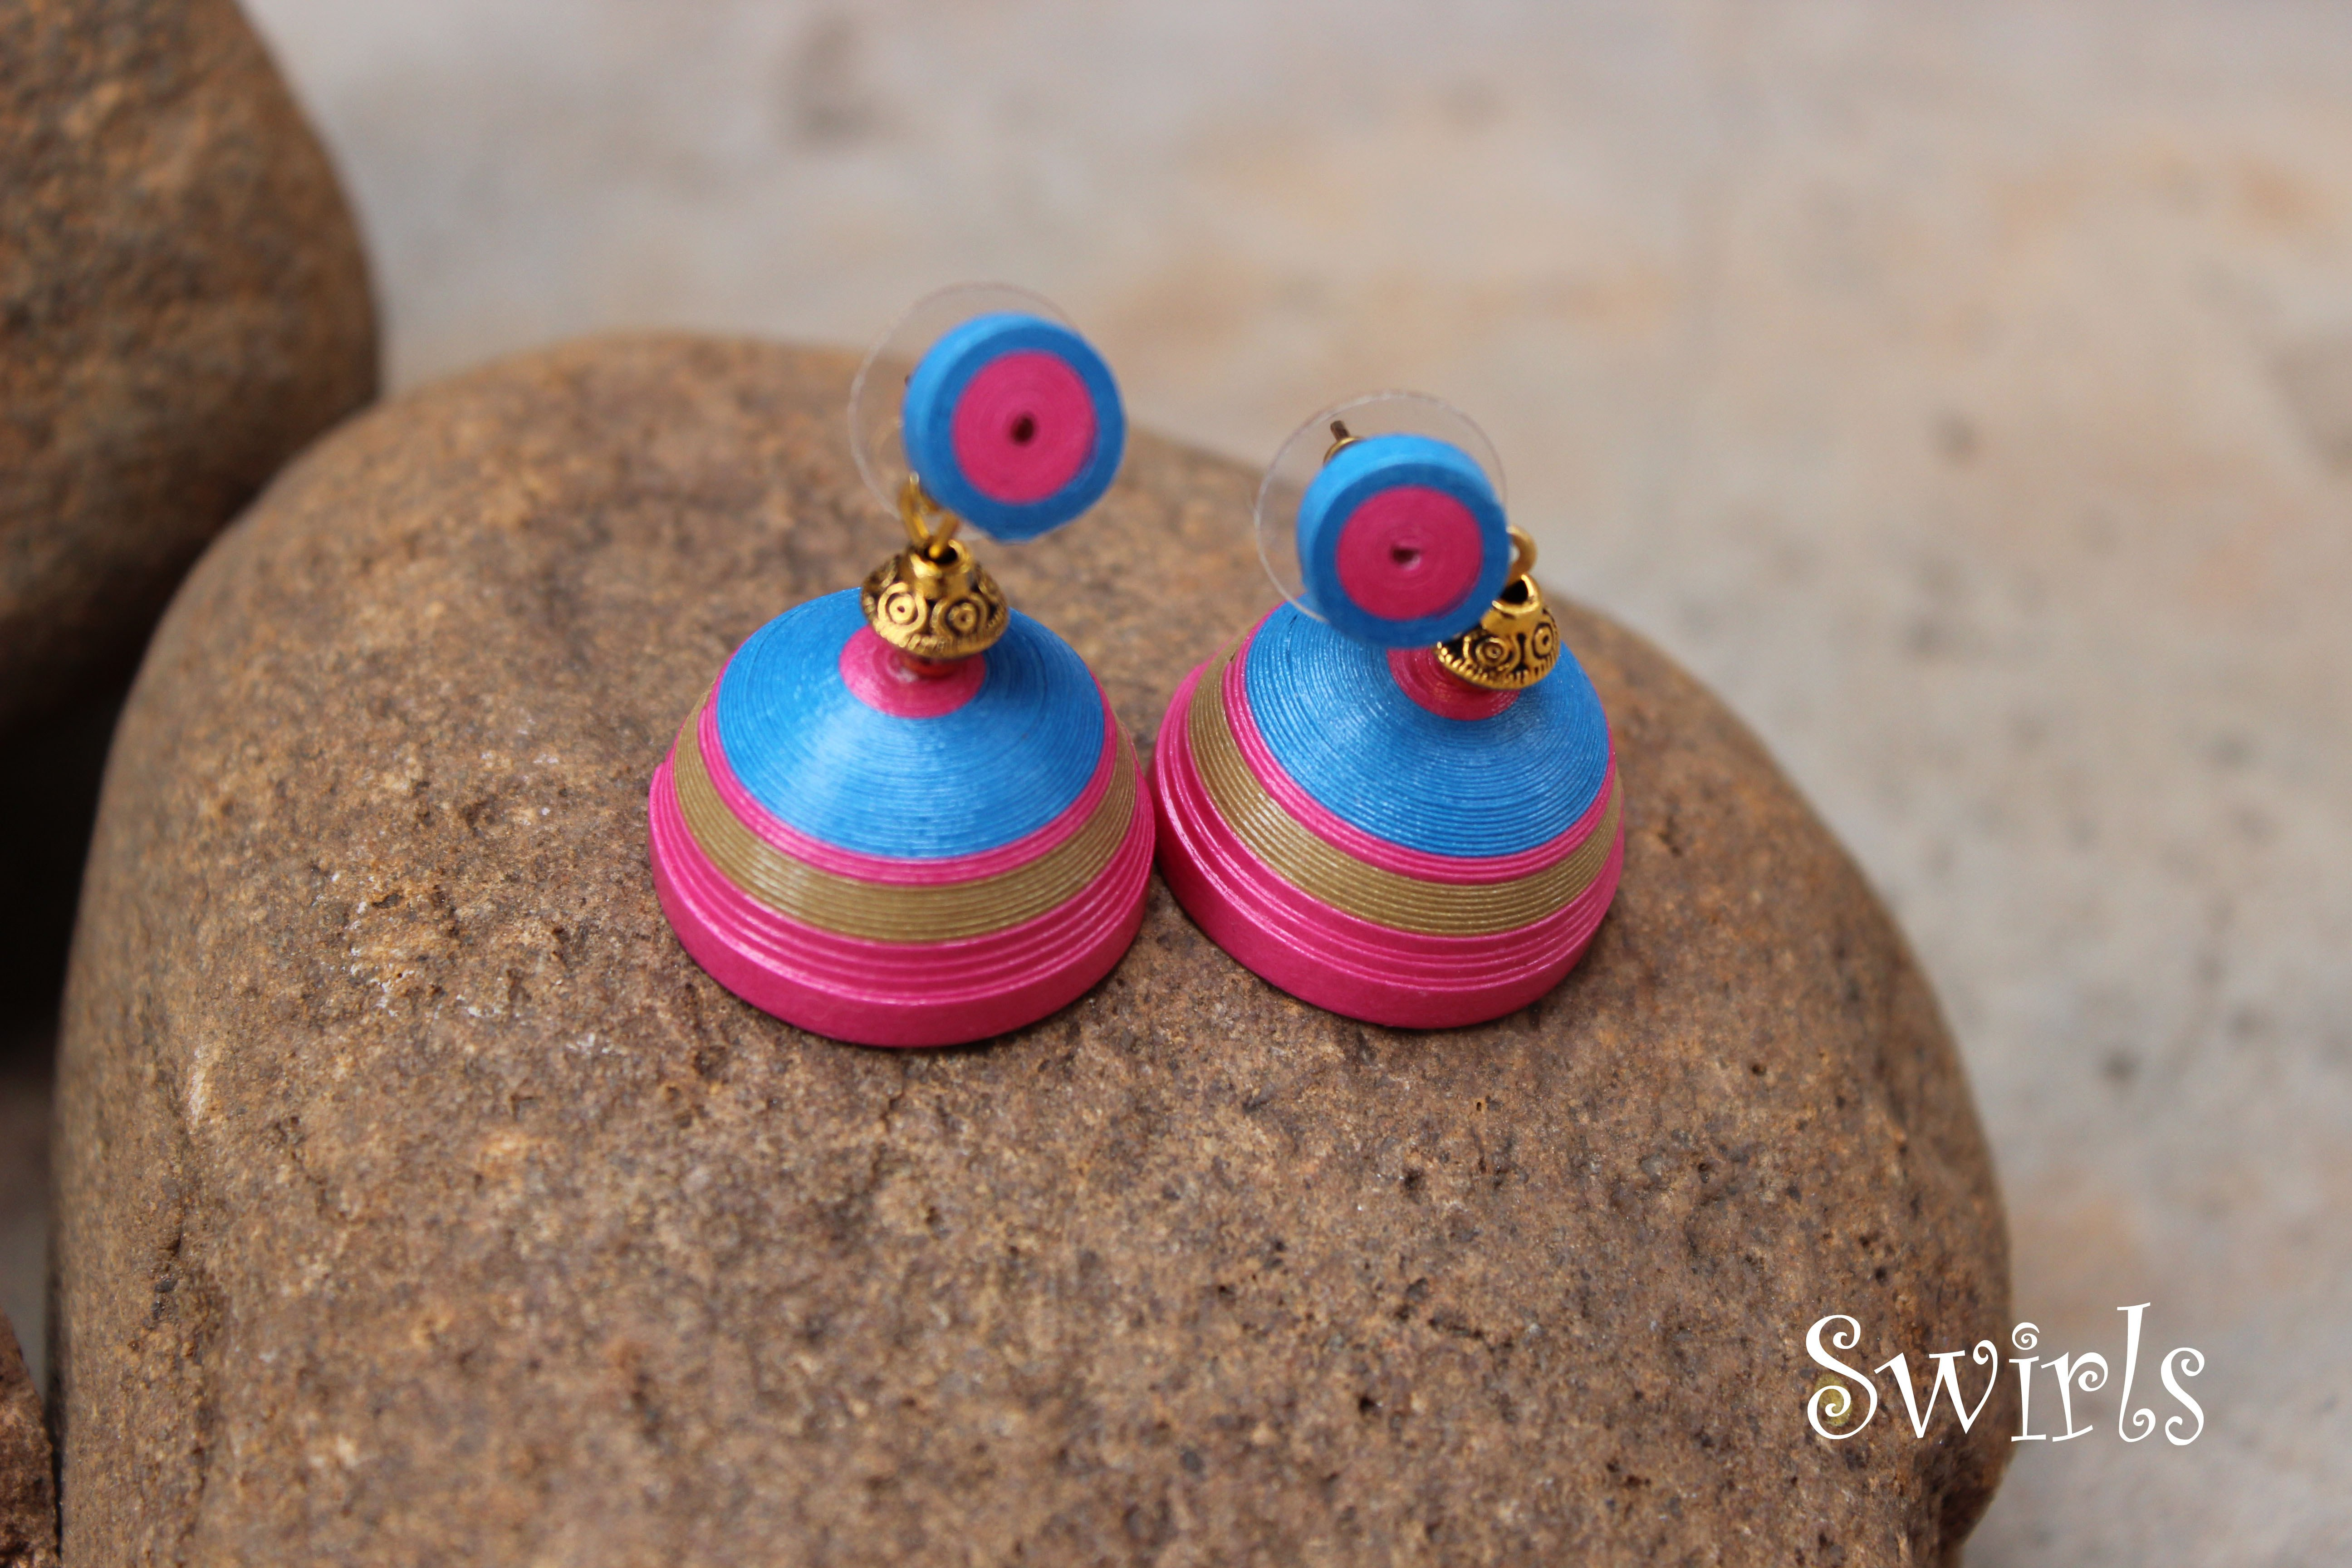 Quilling Paper Earrings Making Video Quilling is it Can Make Paper